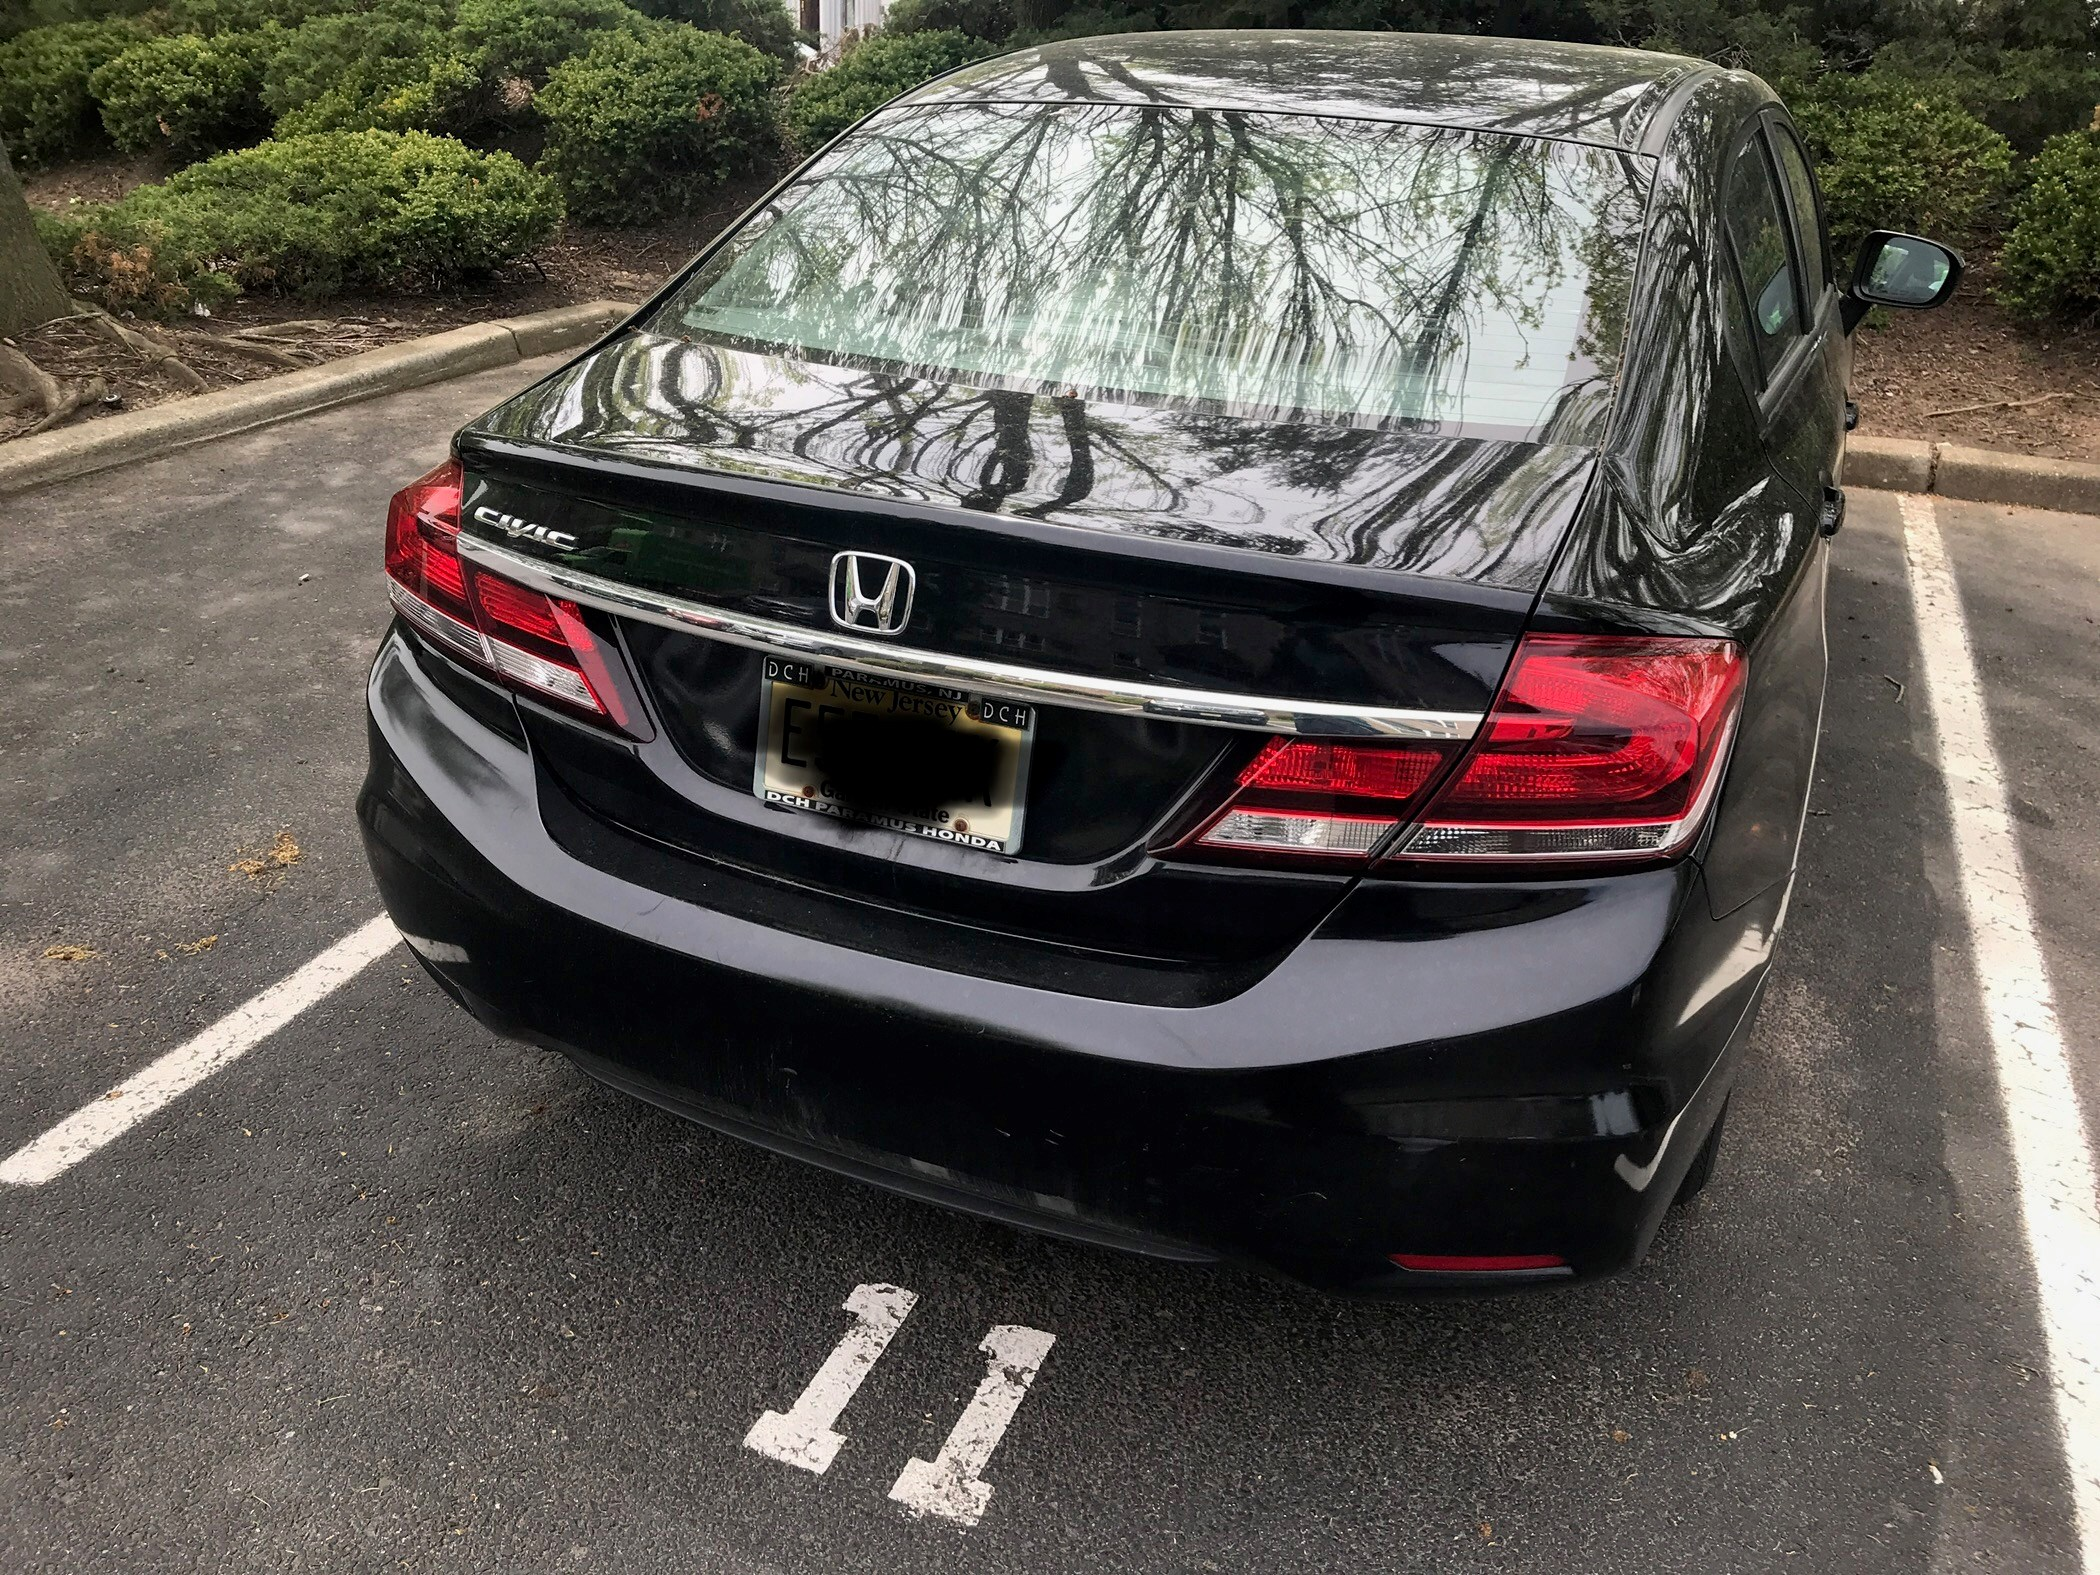 Charming 2014 Black Honda Civic With Extended Warranty   Bumper To Bumper